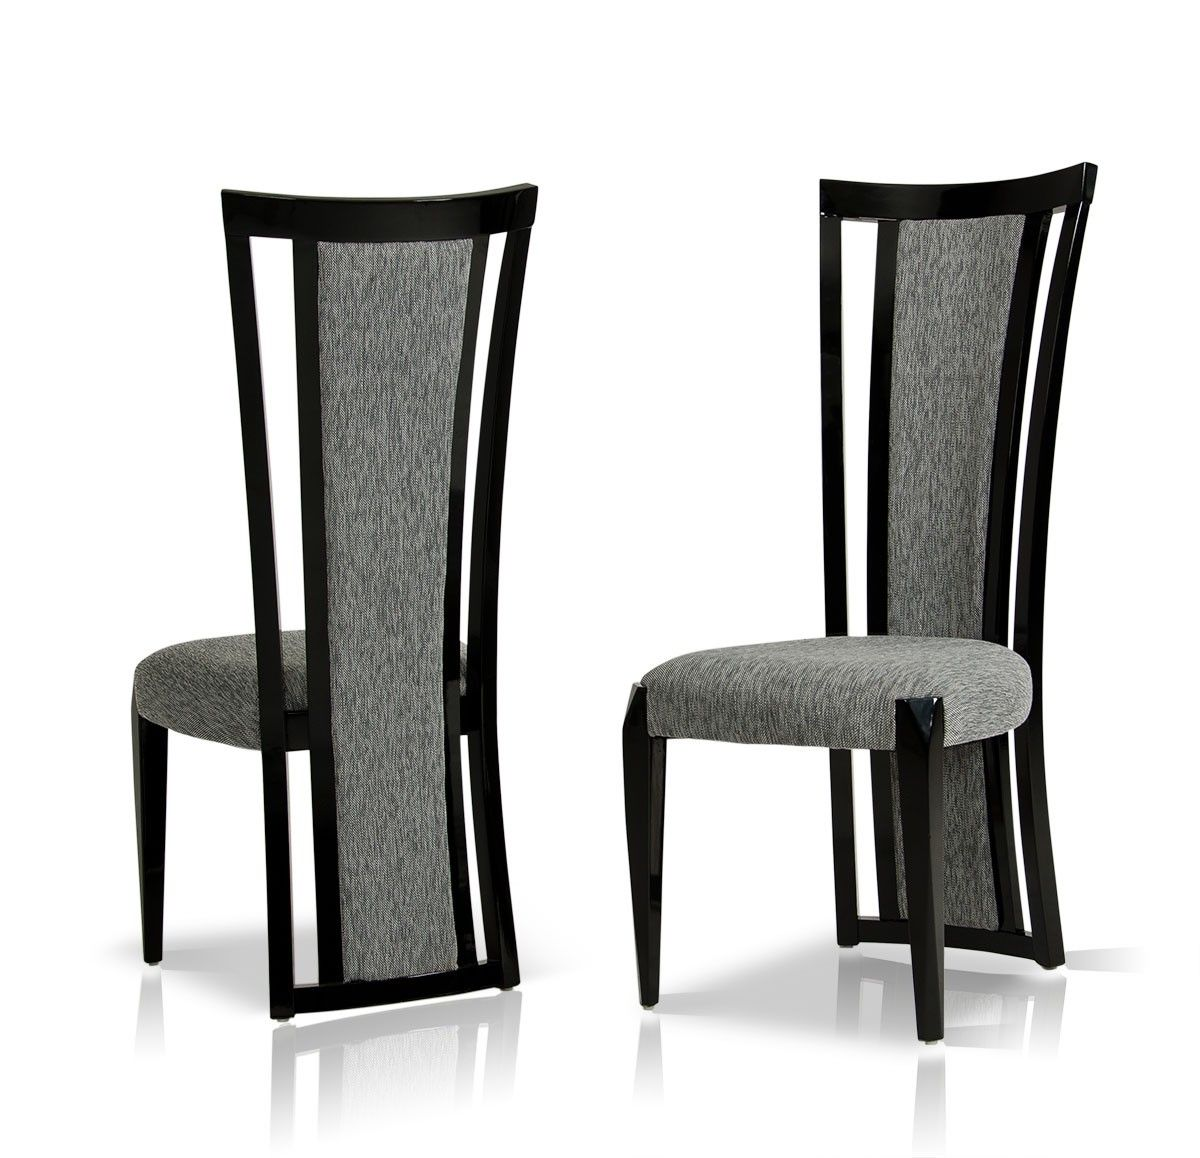 Dining Room Chairs libra modern fabric dining room chair | fabric dining room chairs